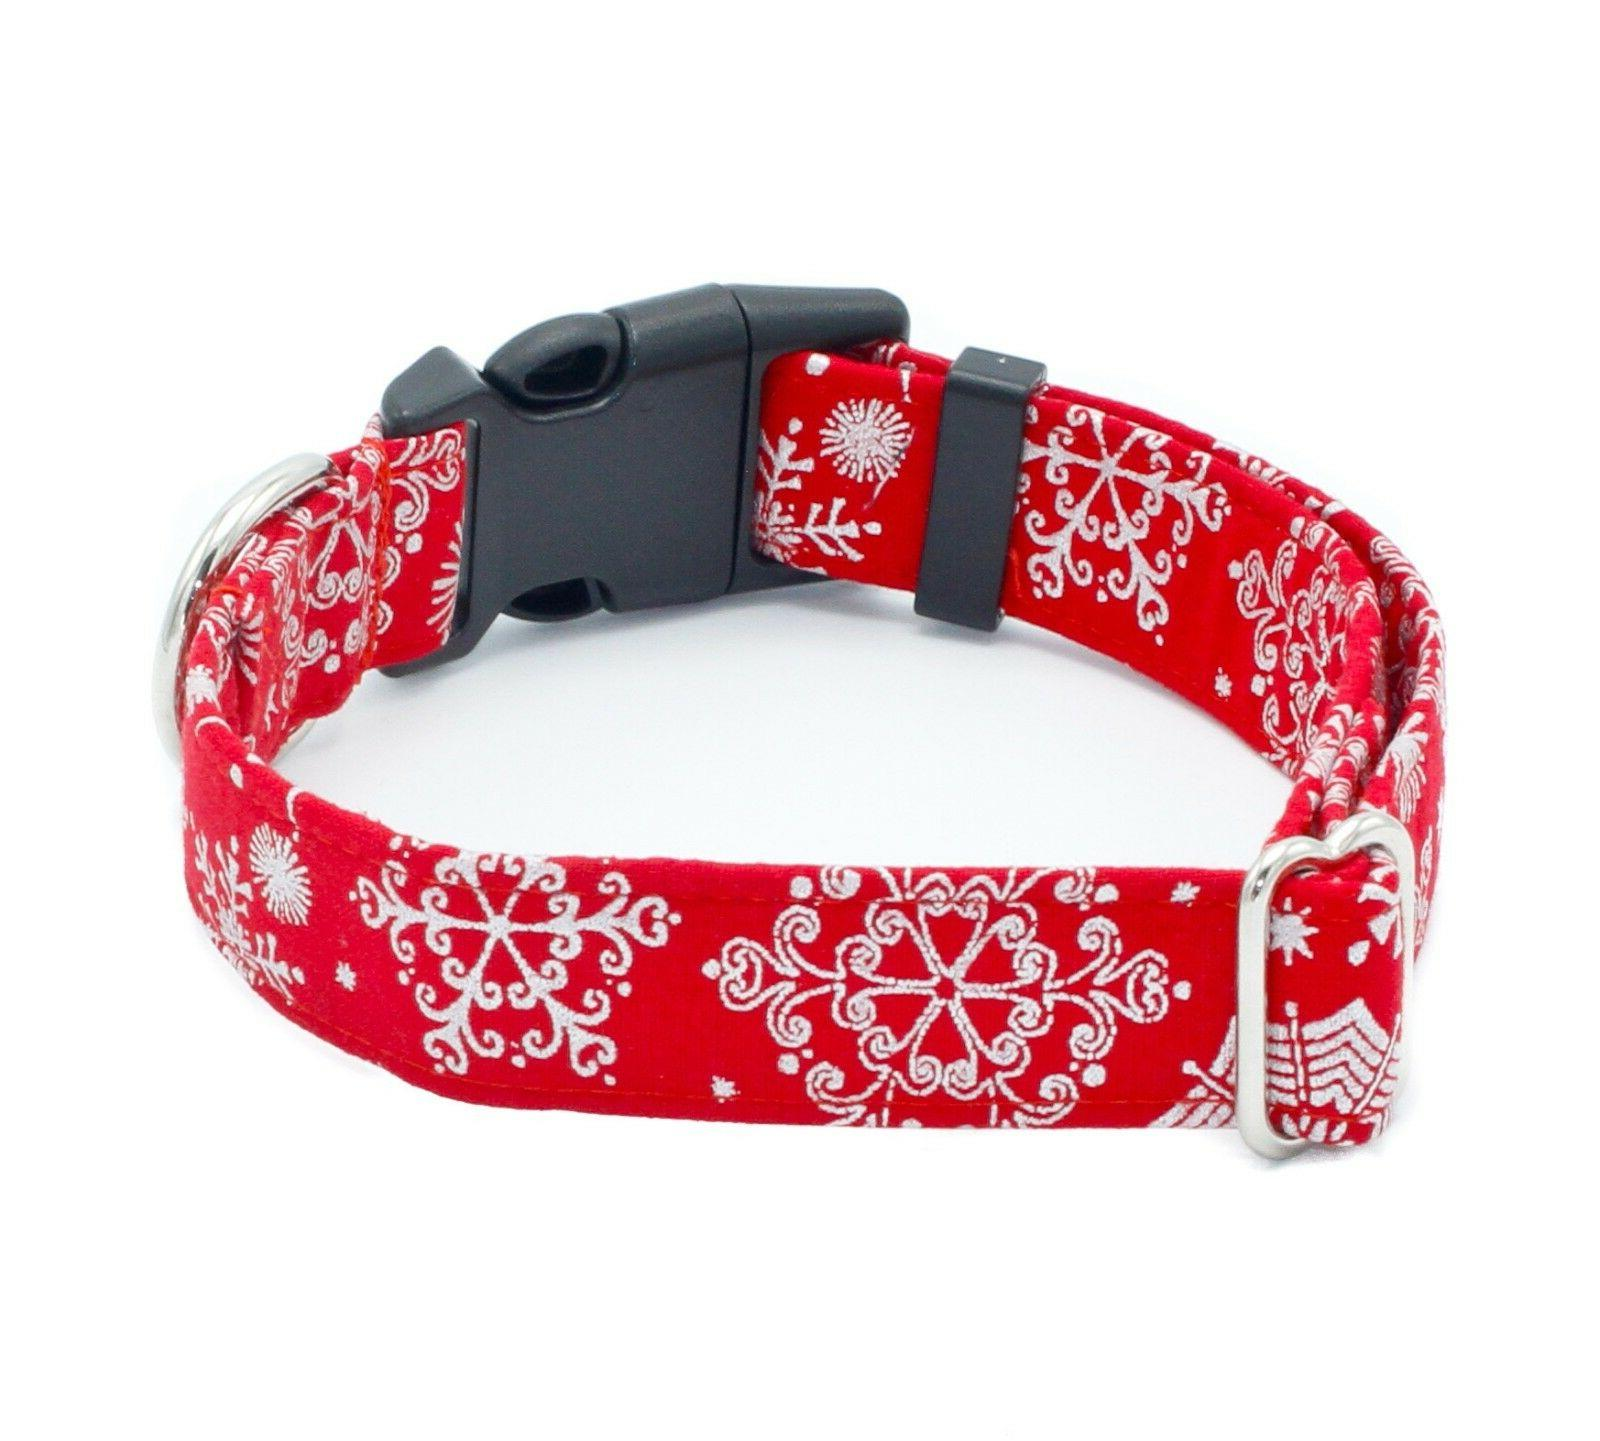 snowflakes red holiday dog collar 1 2